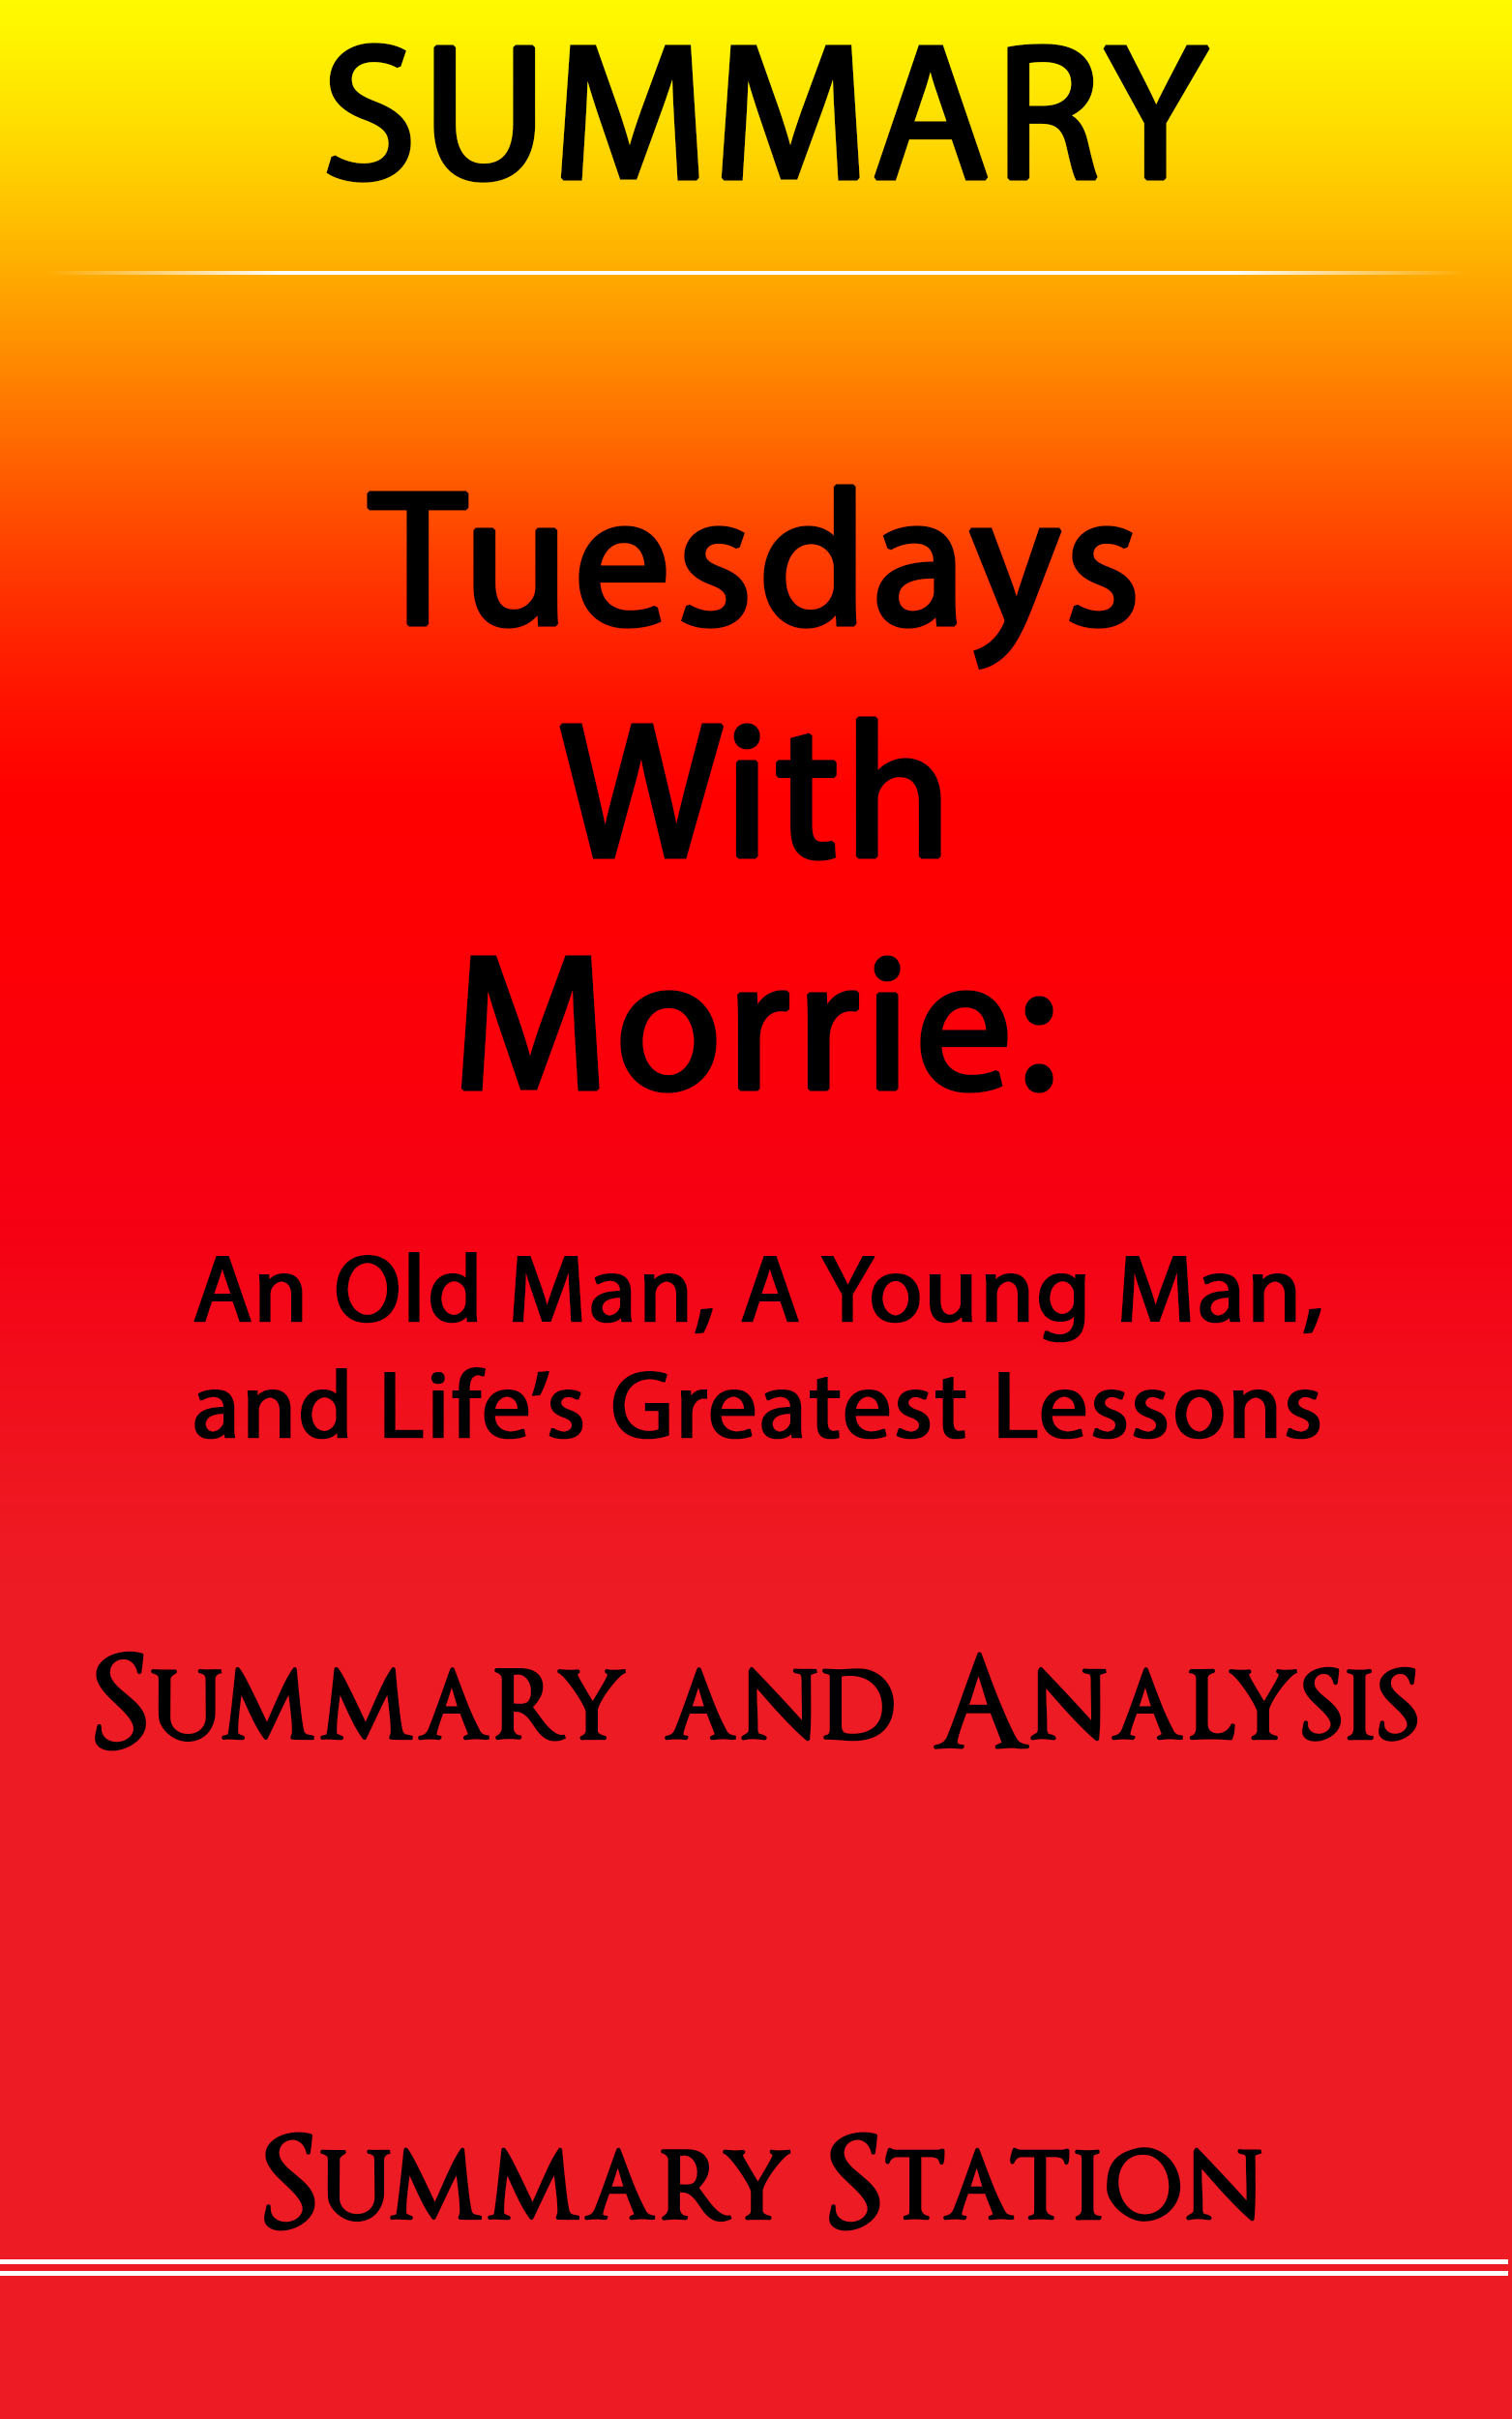 Tuesdays with Morrie: An Old Man, A Young Man, And Life's Greatest Lessons | Summary